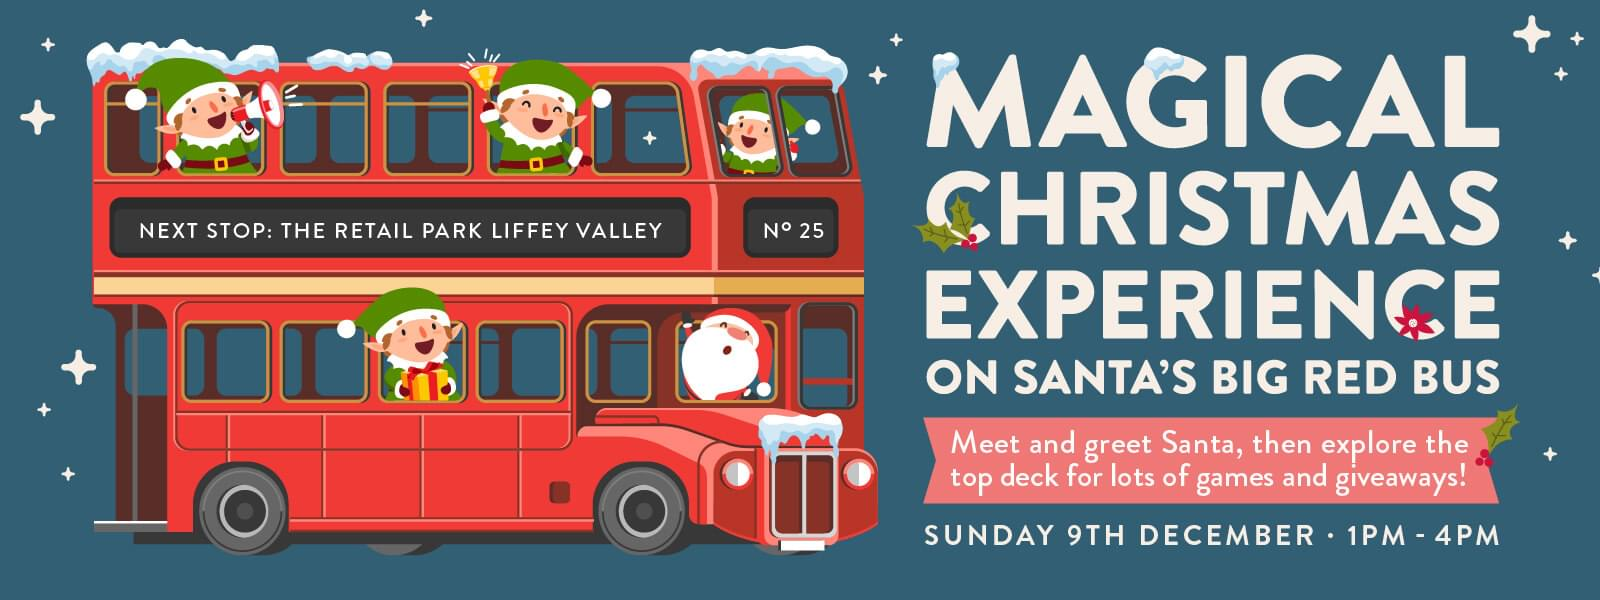 Magical Christmas Experience on Santa's Big Red Bus